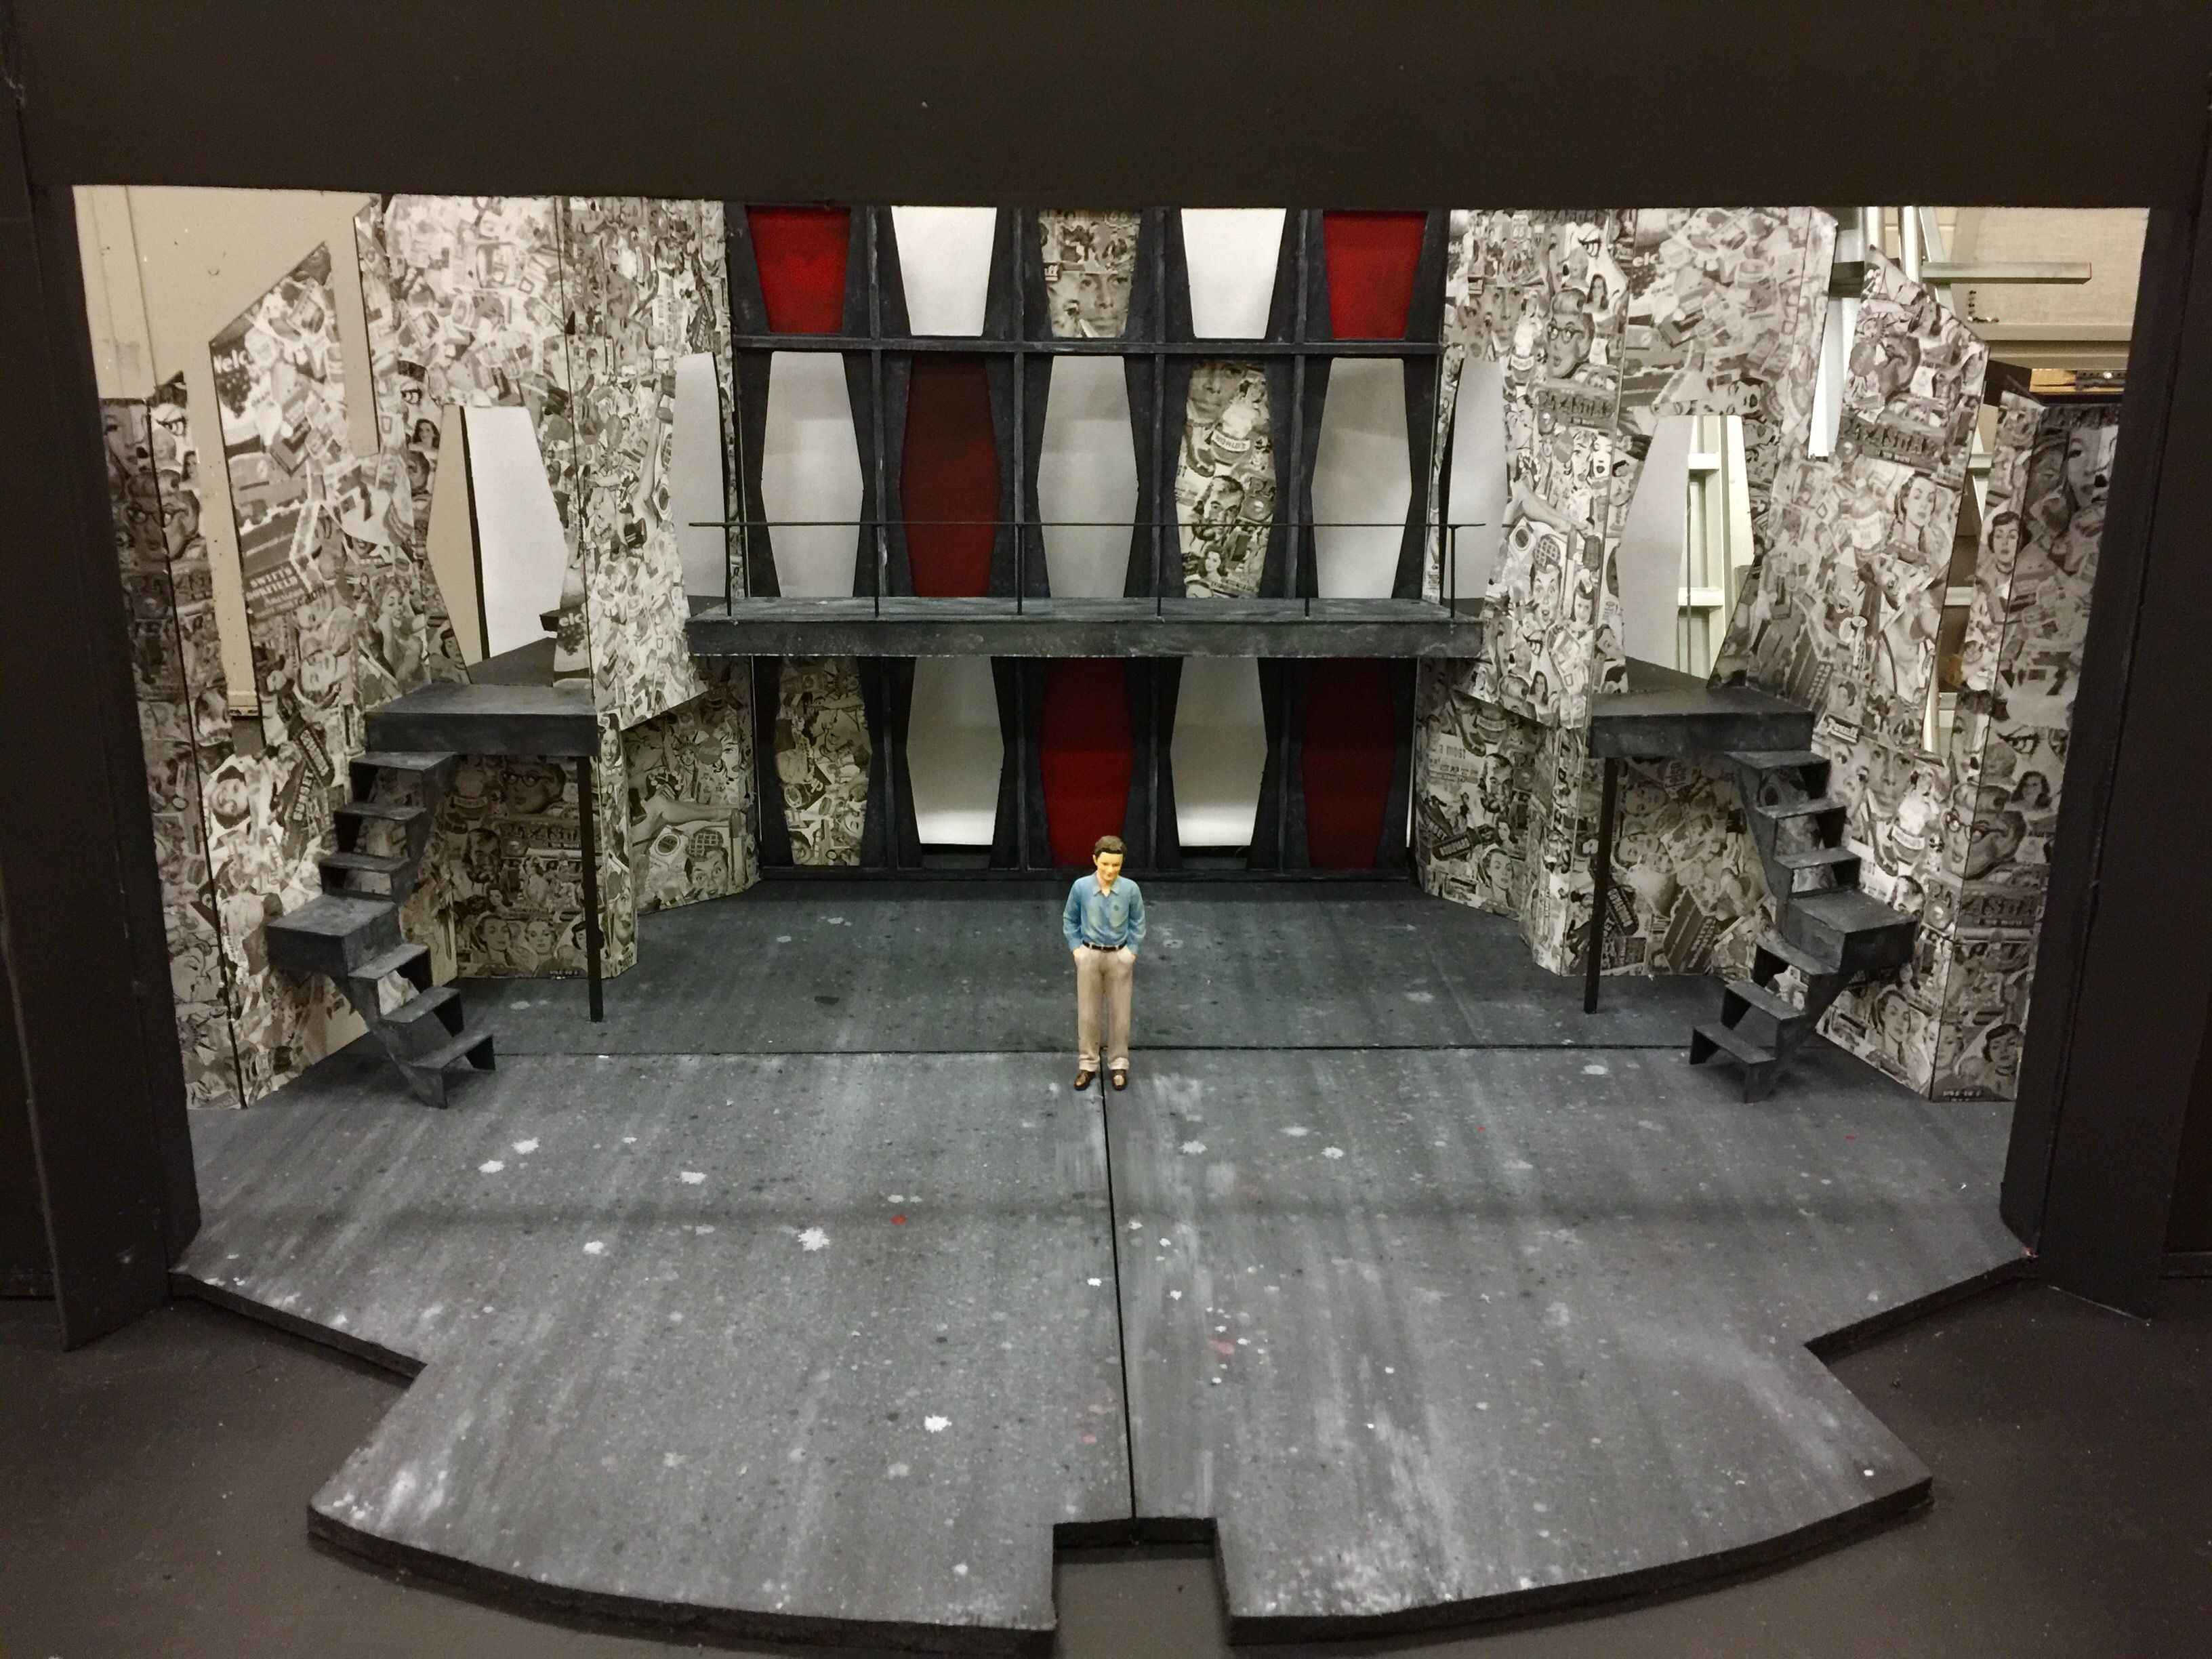 Scenic Design model for Grease, the musical, at Tarrant County College (C. A. Roberson Theatre, Arlington, TX). Scenic Design by Luke Atkison #theatre ...